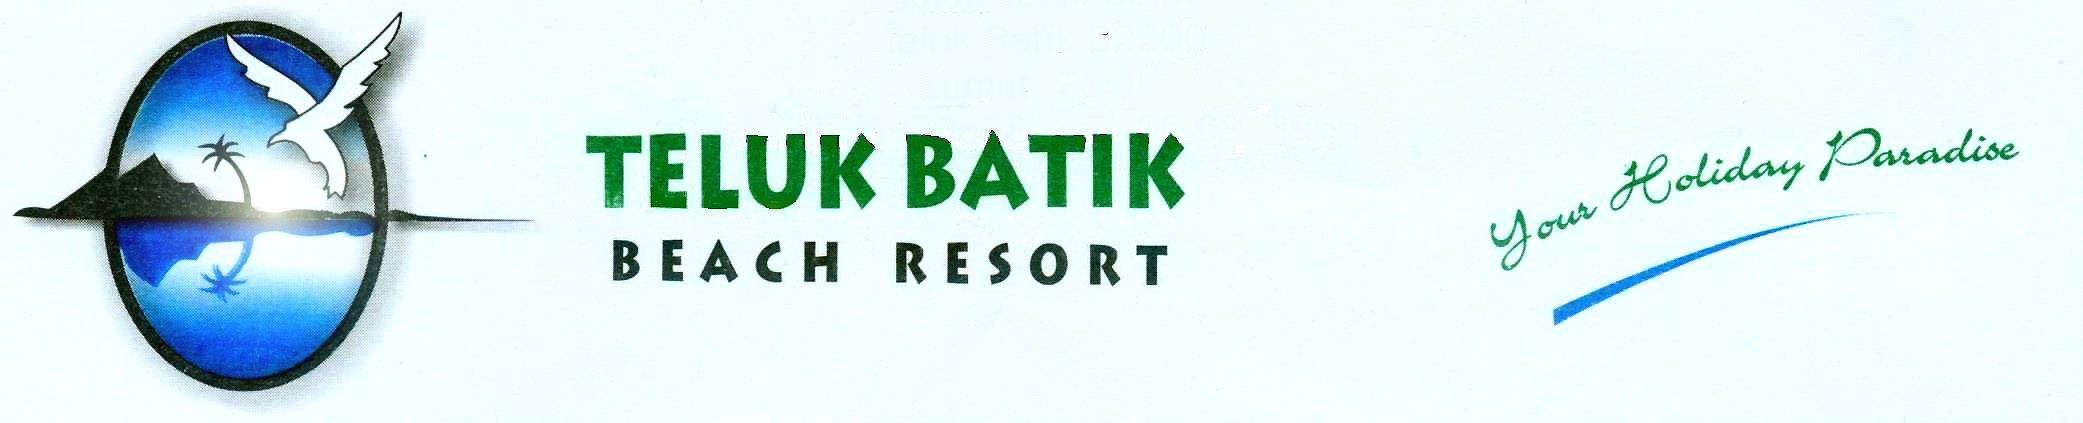 Teluk Batik Beach Resort Logo